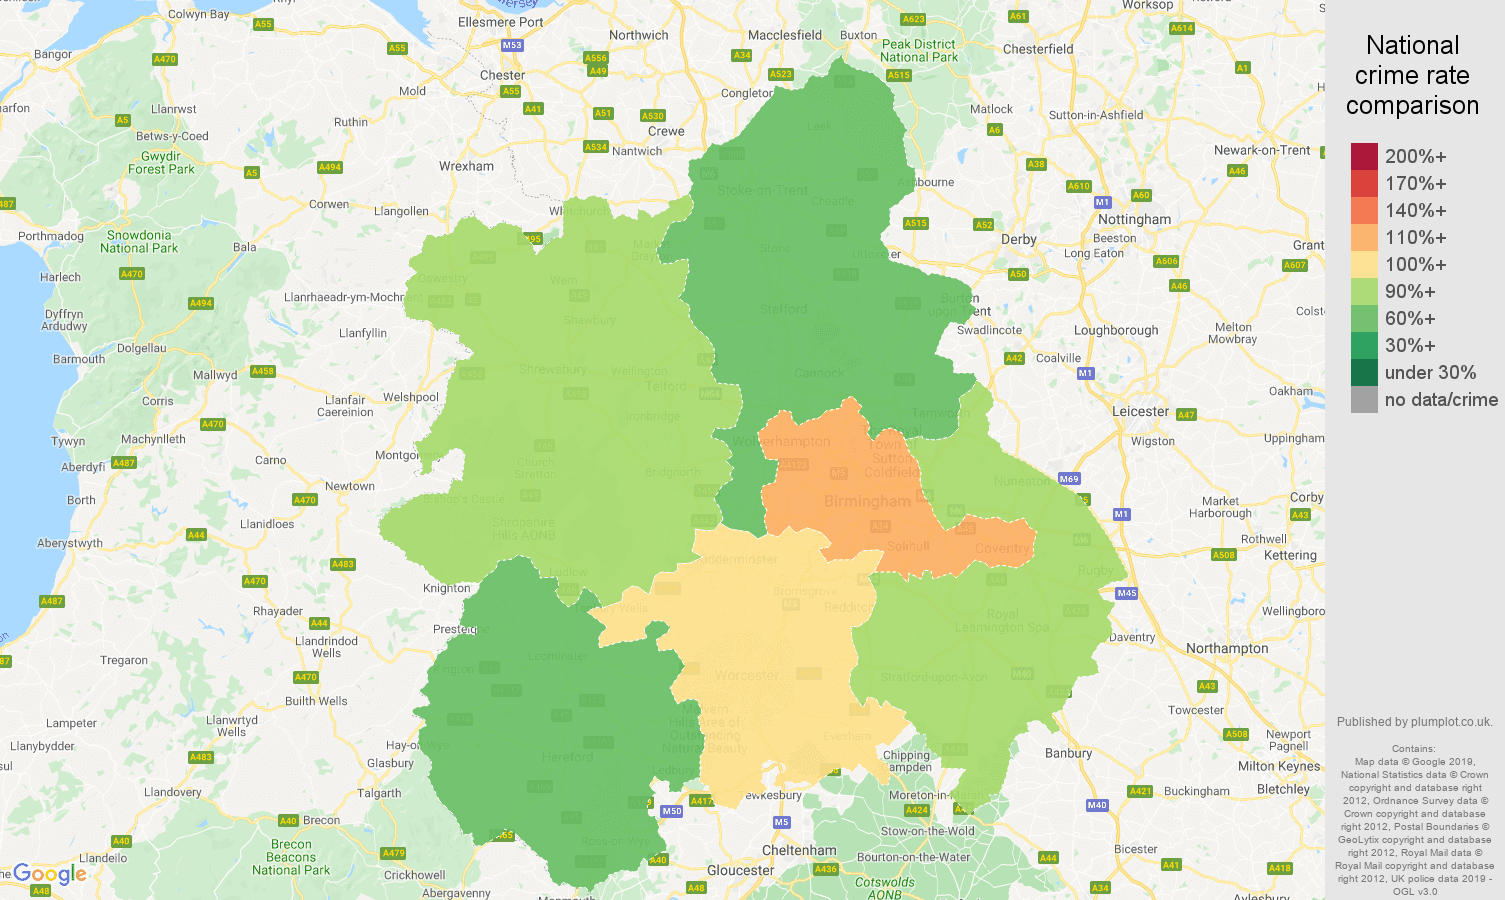 West Midlands possession of weapons crime rate comparison map